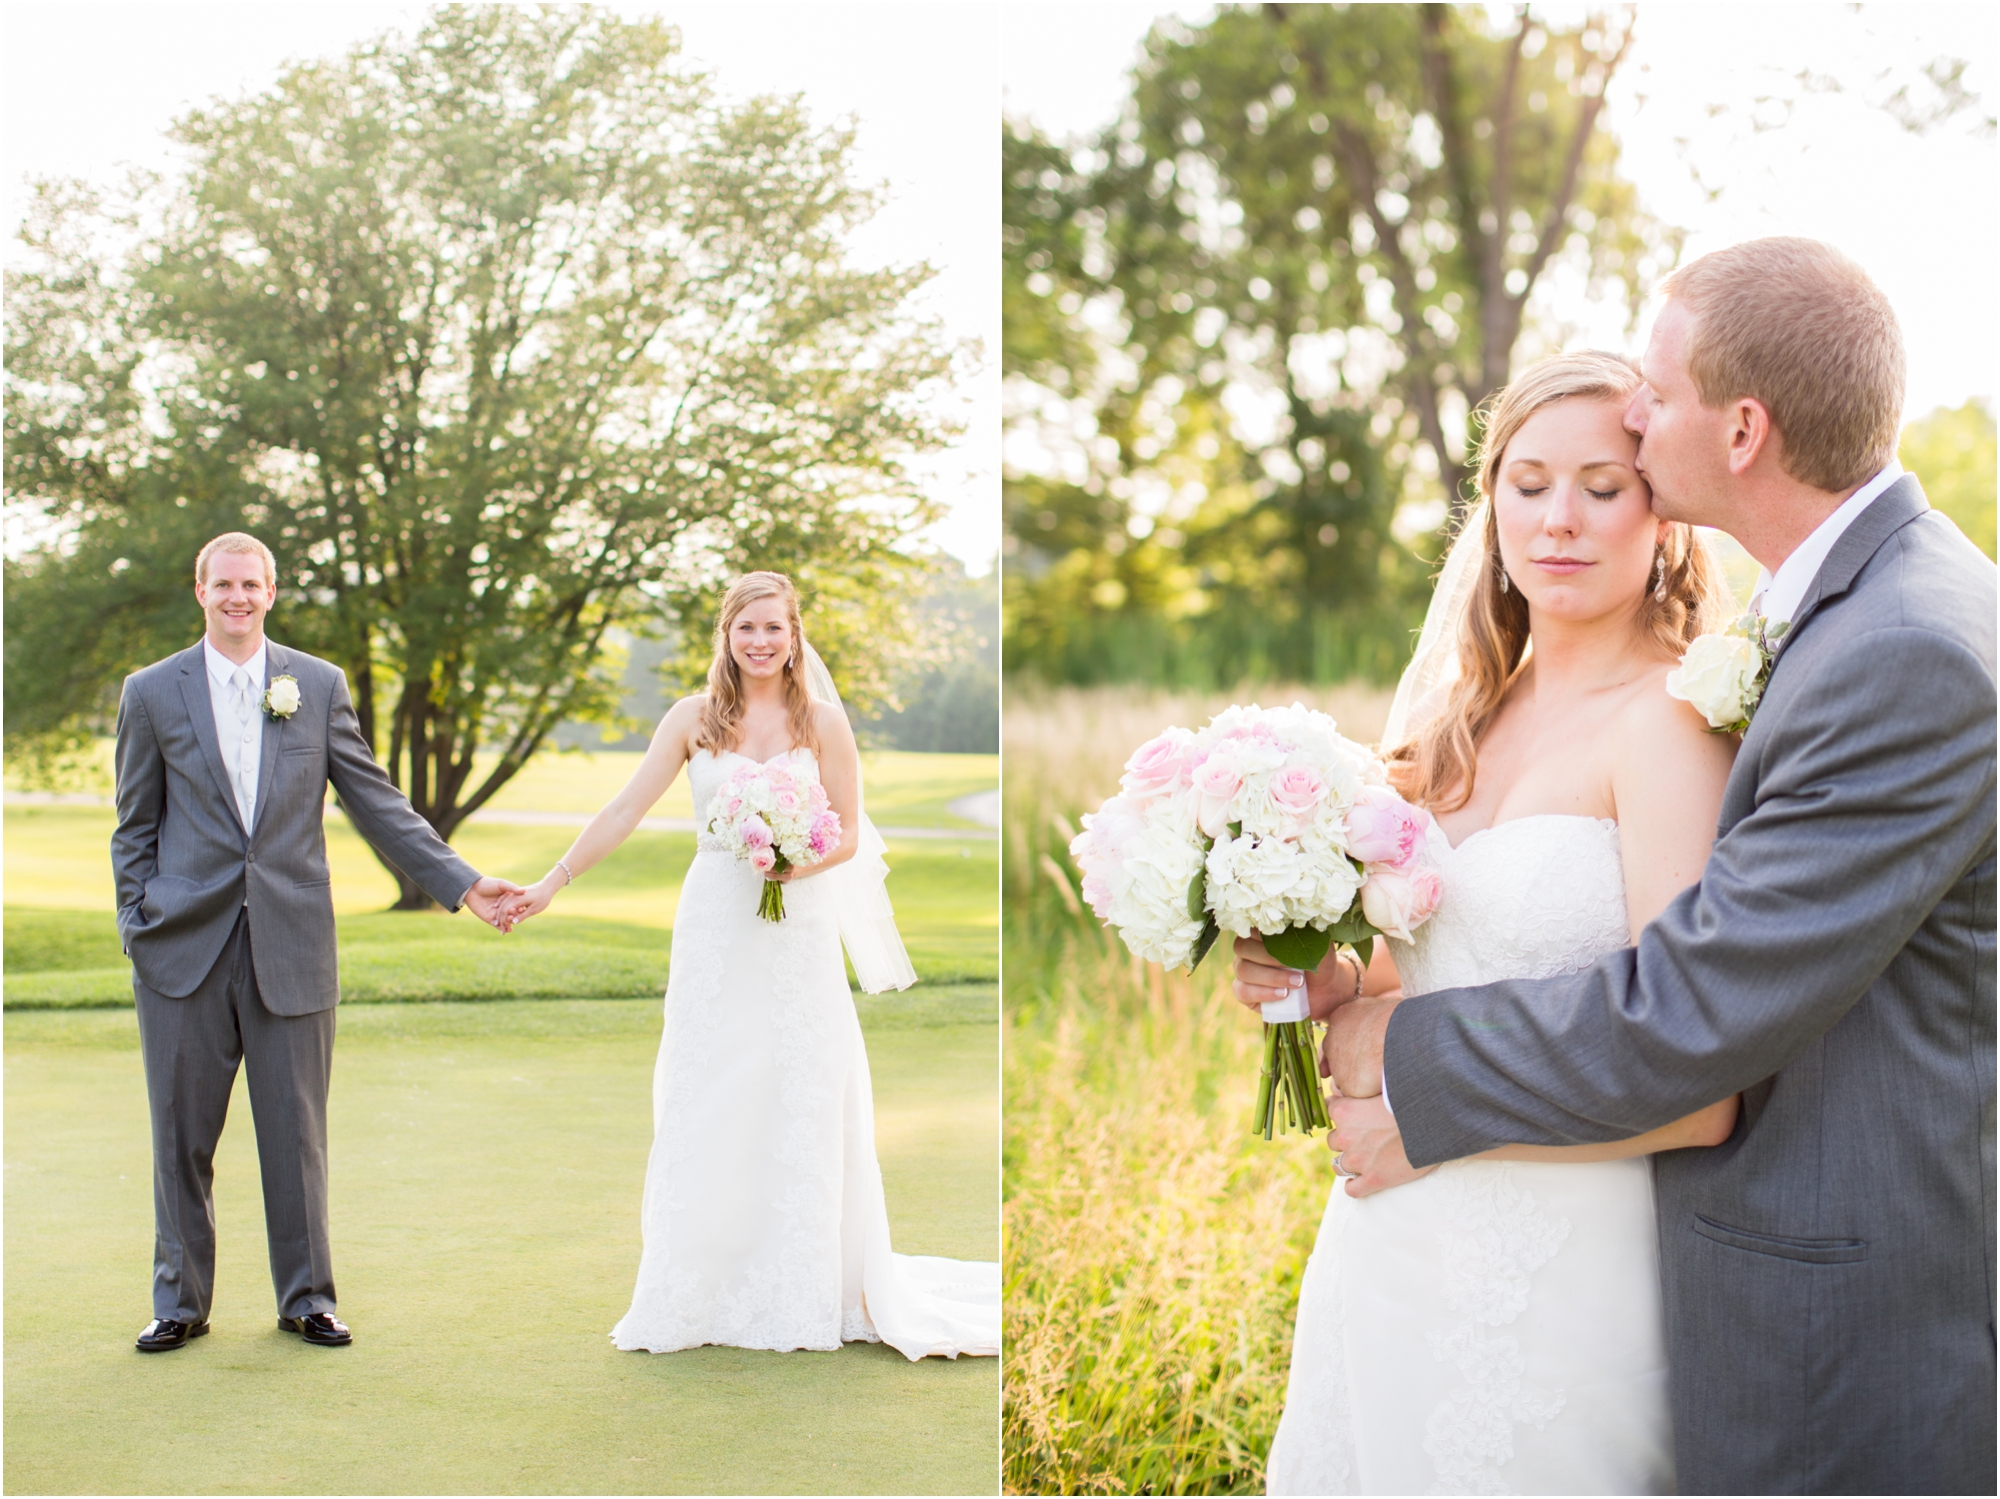 3-Banal Wedding Bride & Groom Portraits-668_annagracephotography maryland wedding photographer country club of maryland.jpg